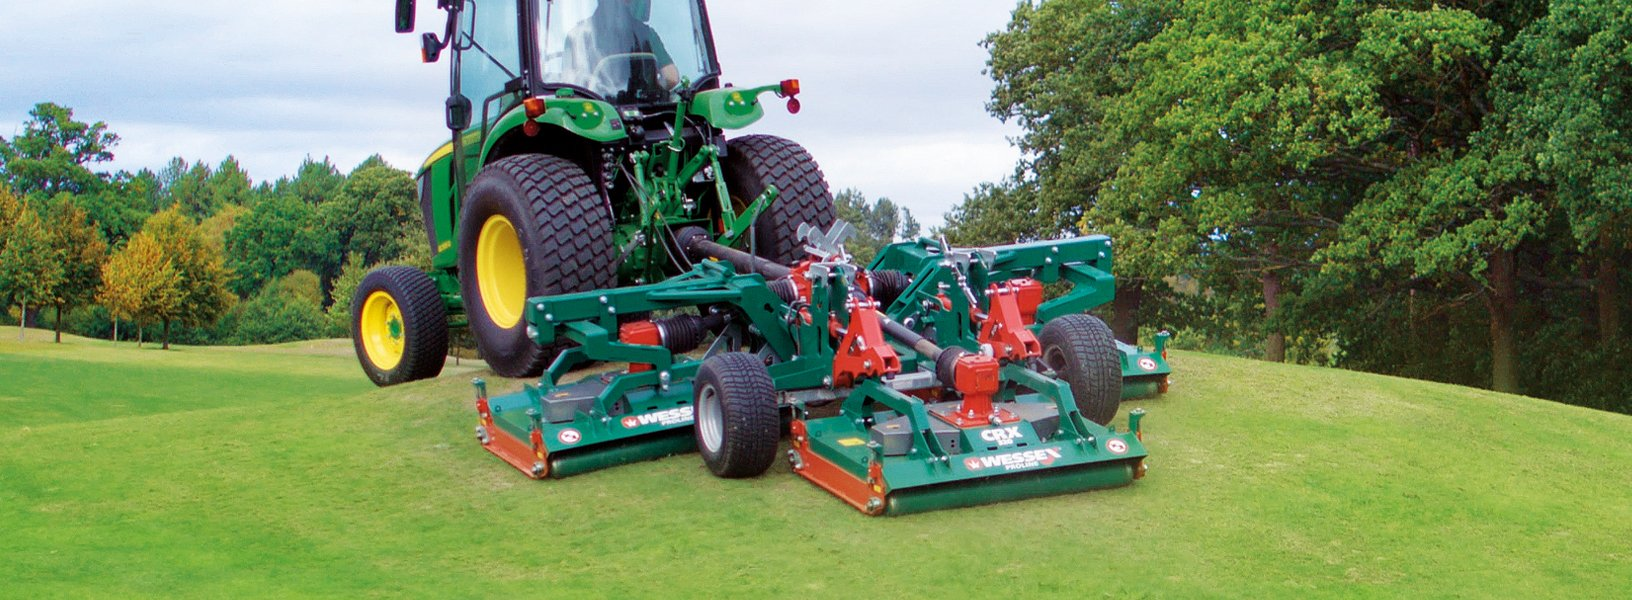 Crx 320 new 2020 1 - professional groundcare & agricultural equipment